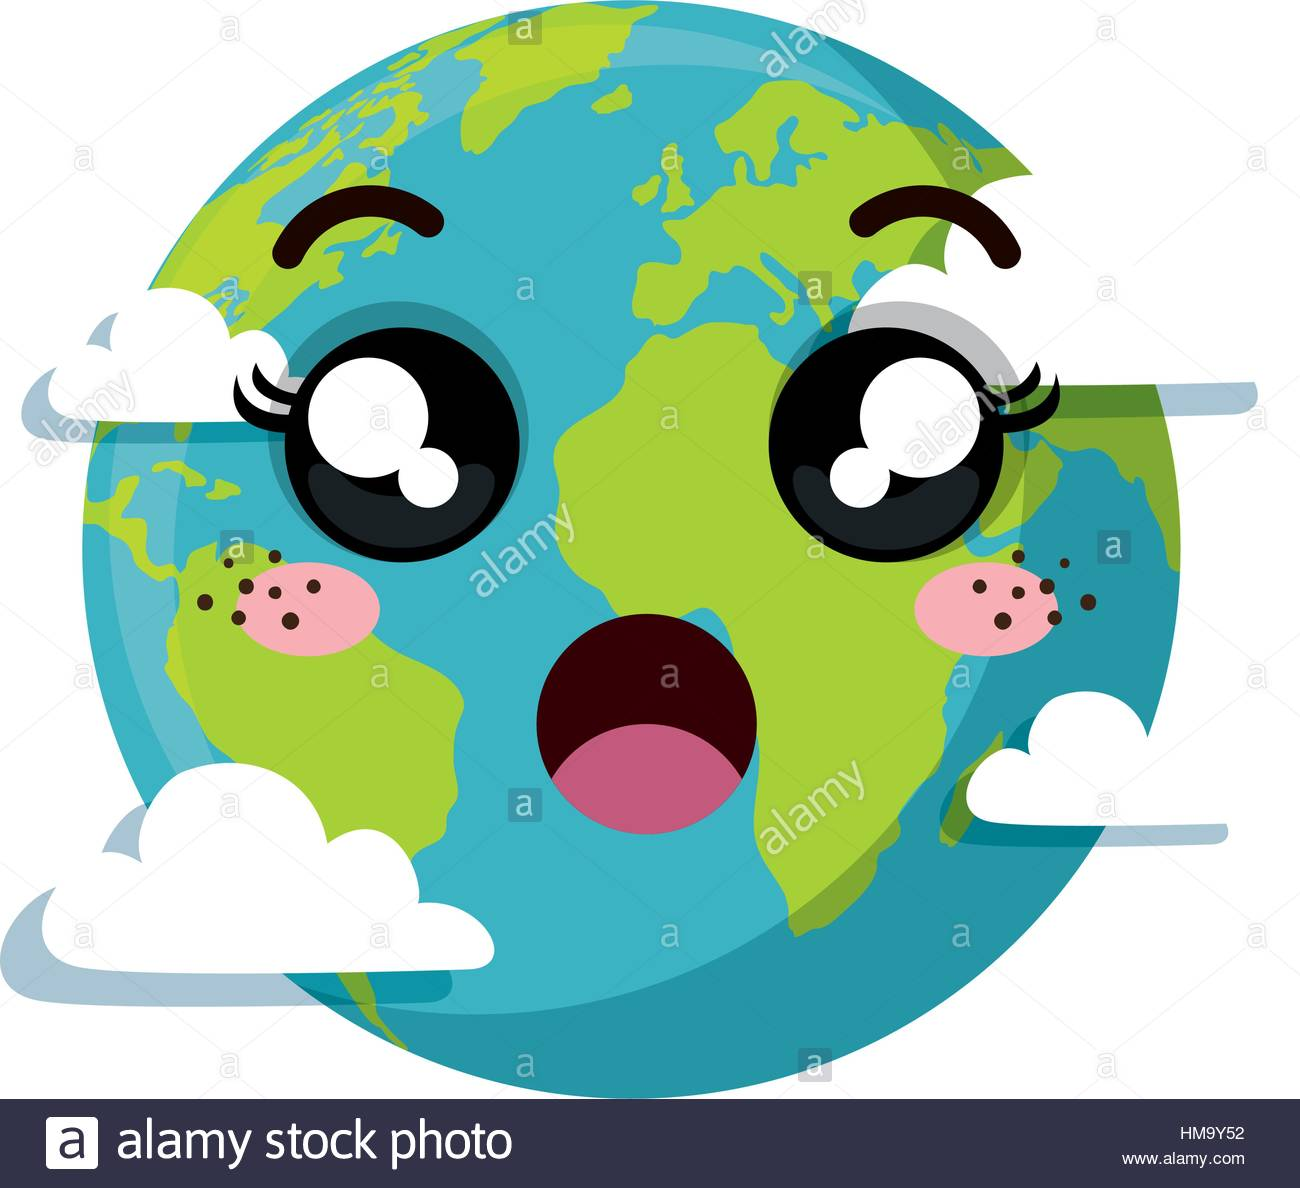 1300x1188 Planet Earth Character Of The Solar System Vector Illustration